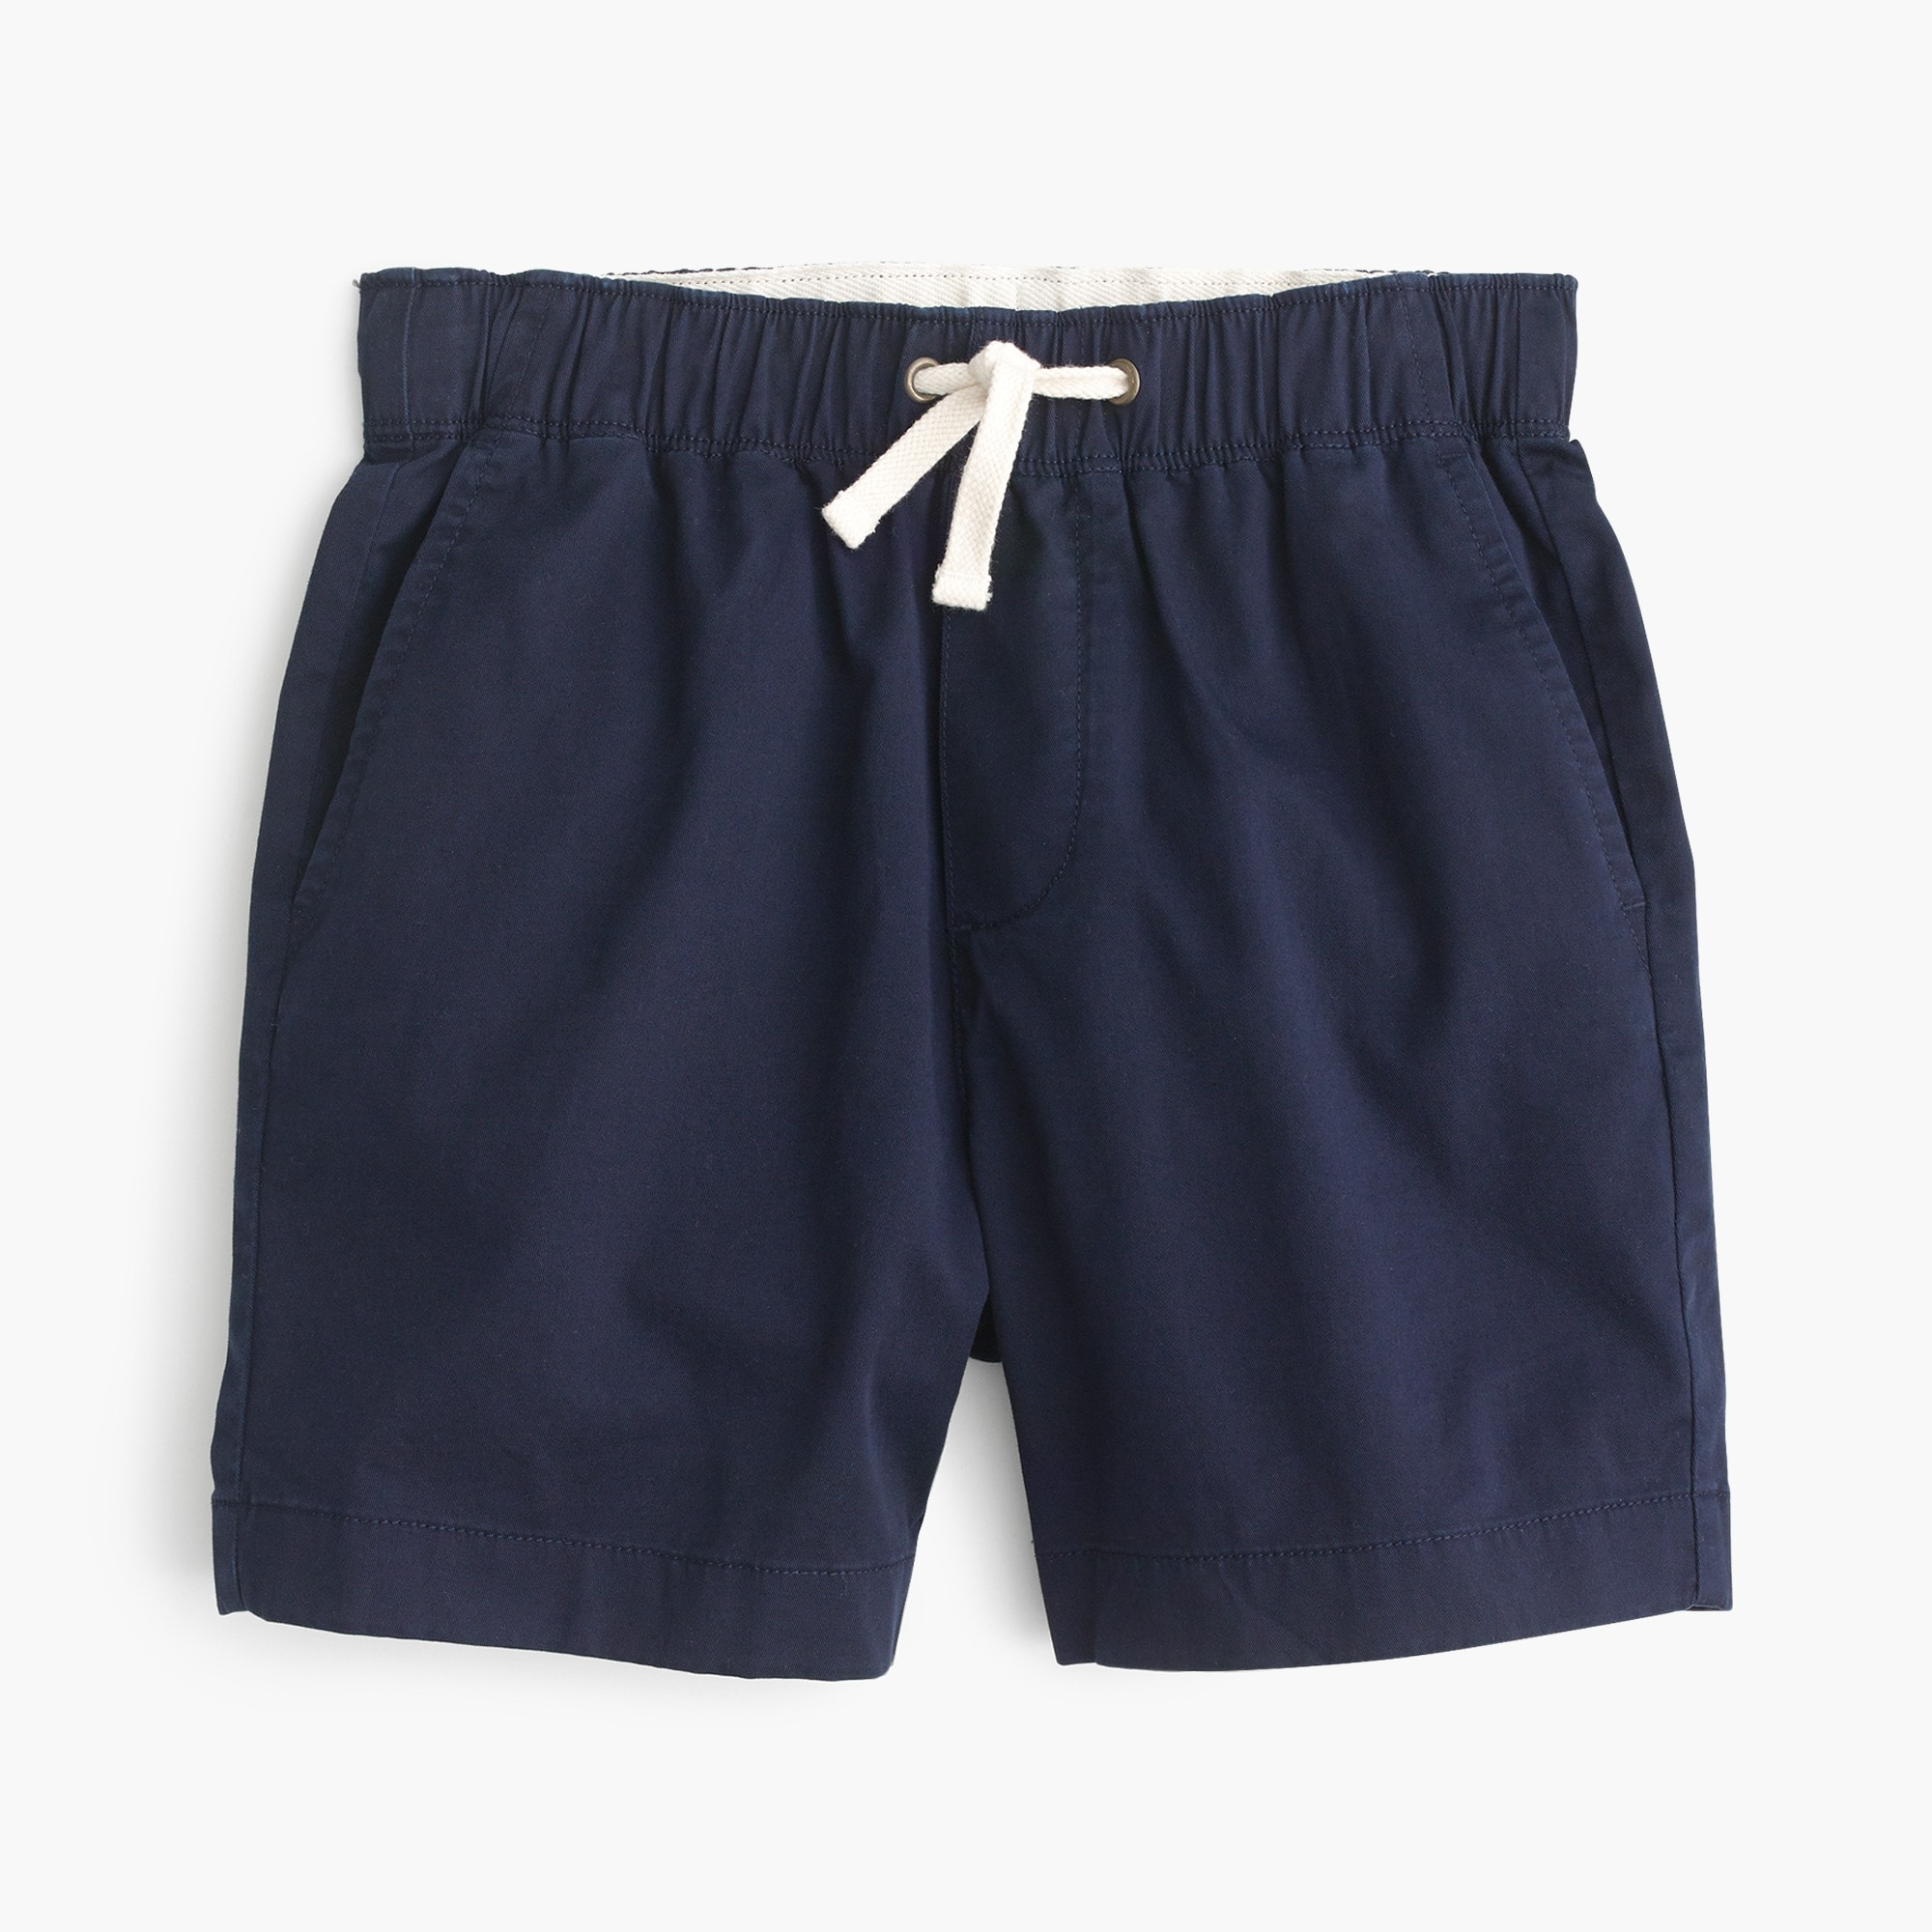 boys Boys' stretch dock short in lightweight chino